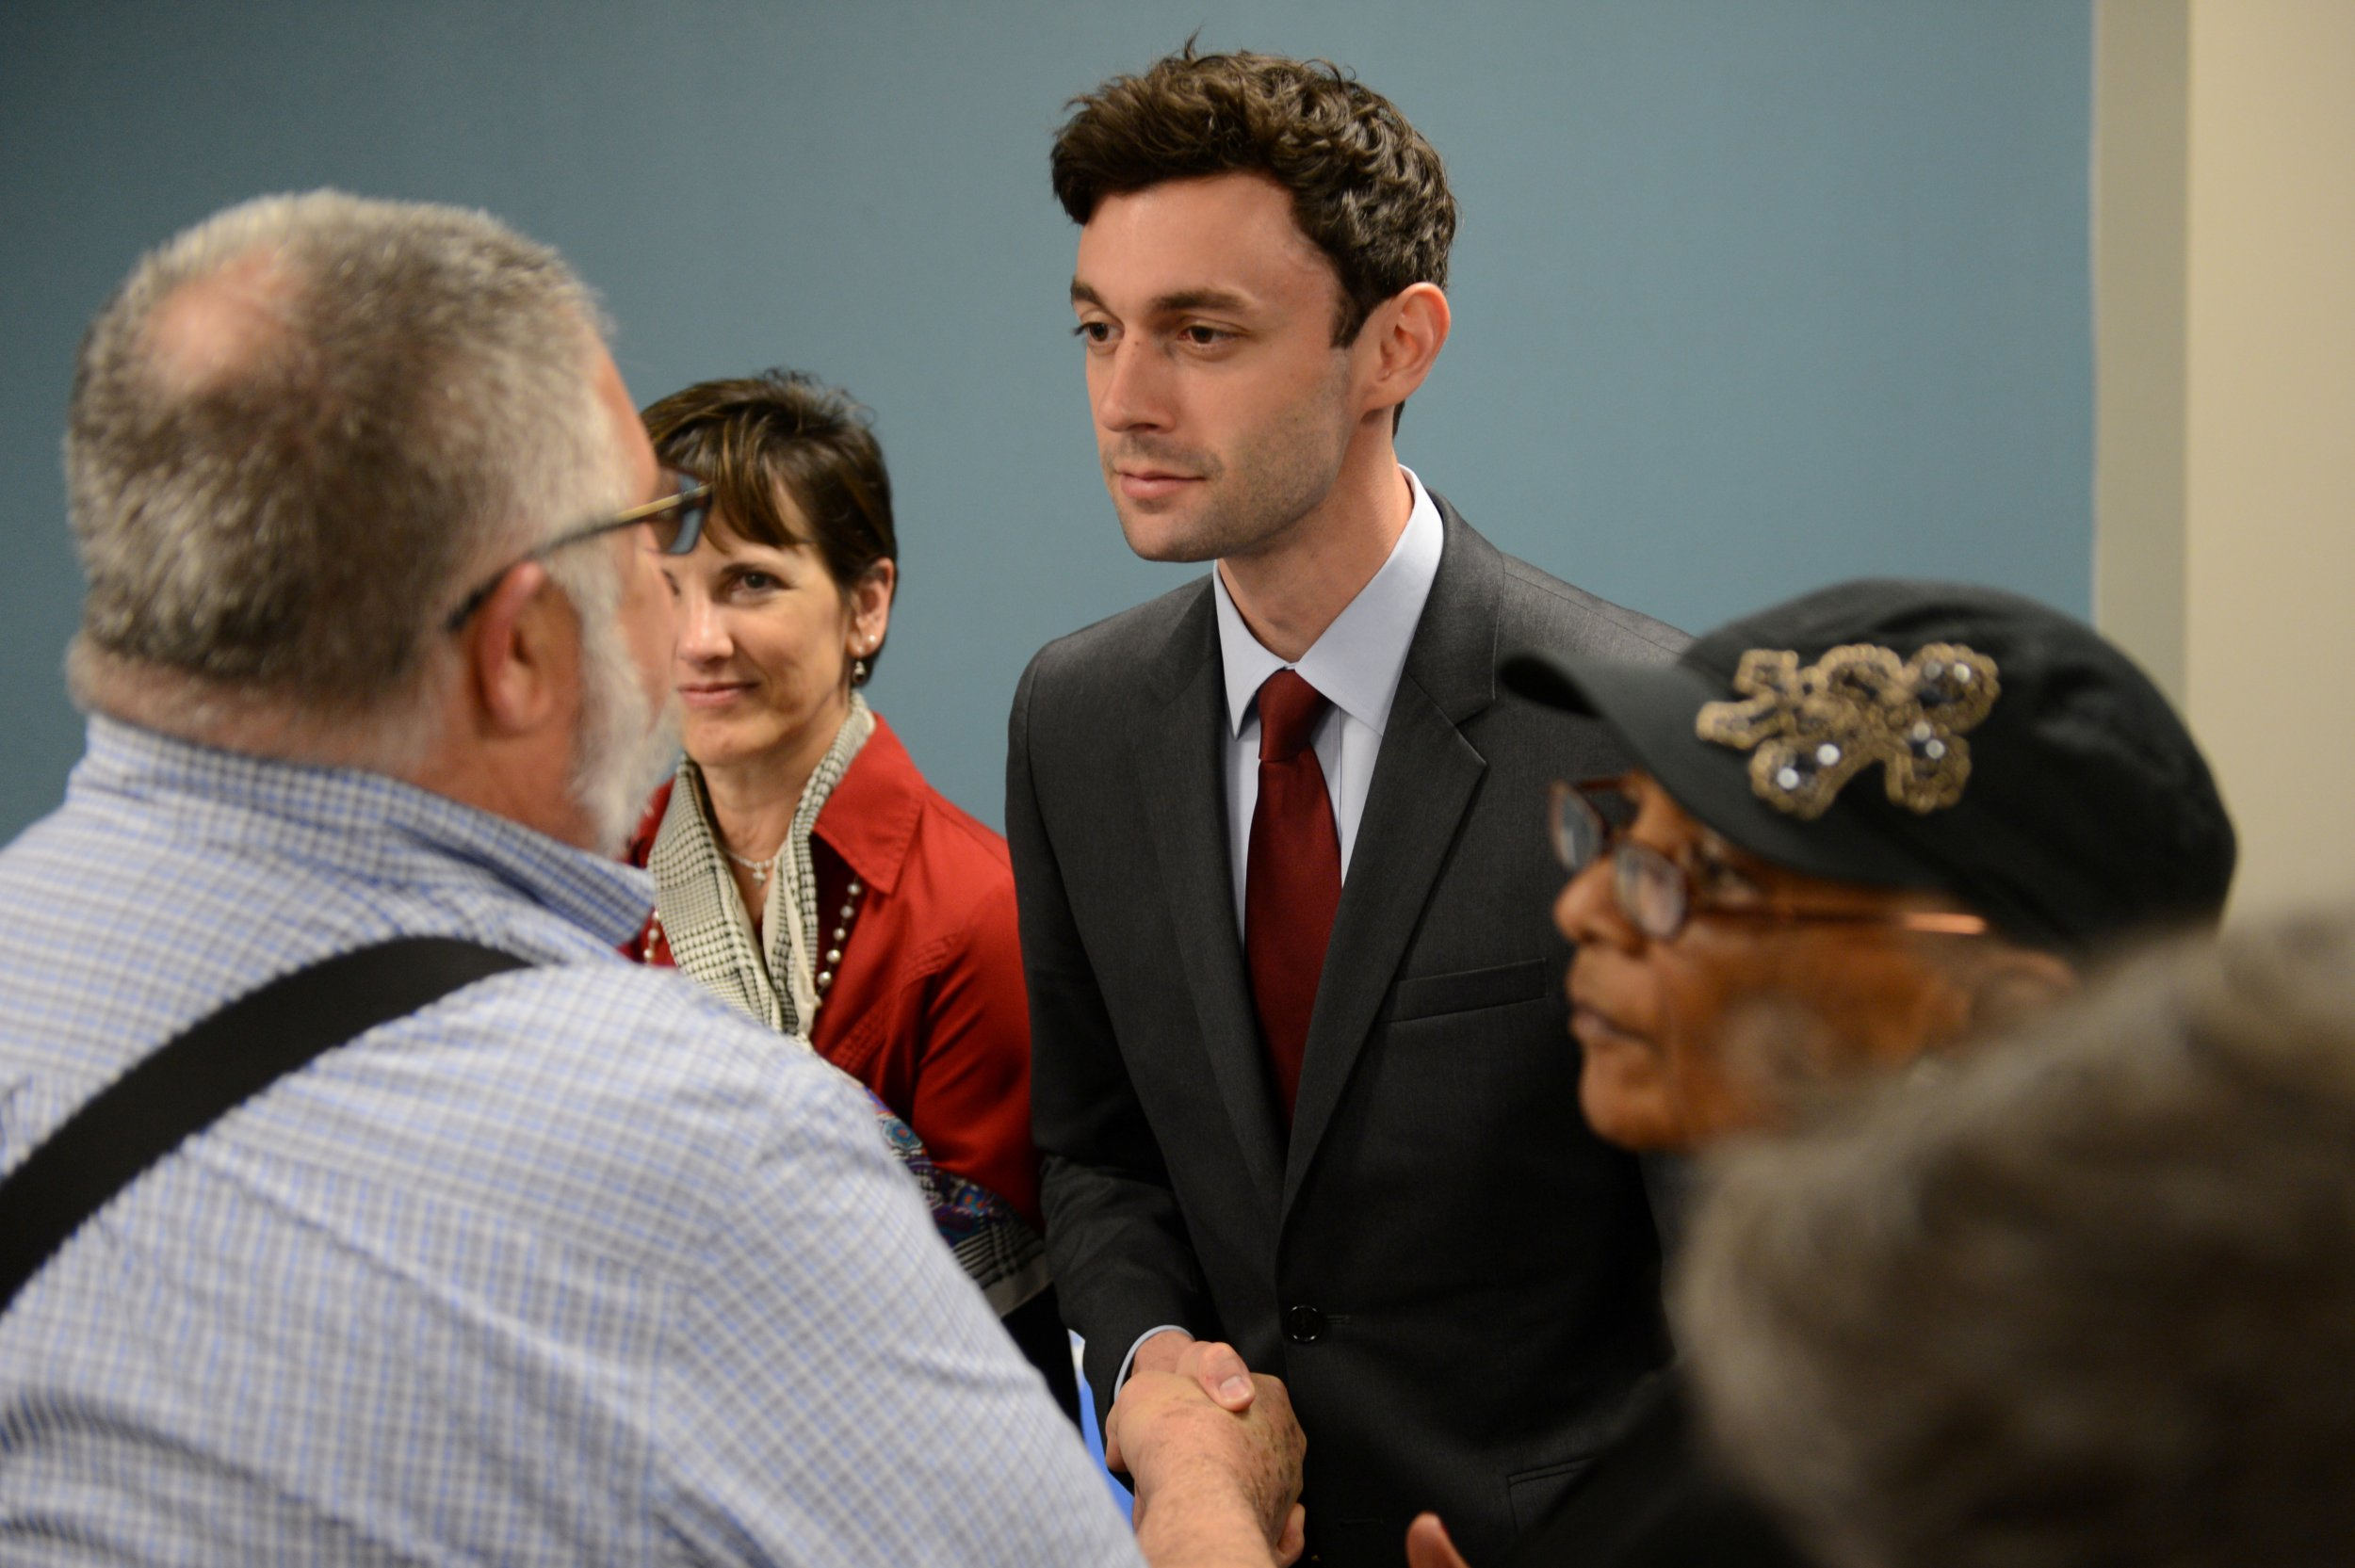 After Ossoff's defeat, the rifts in the Democratic party will only get worse in the Trump era